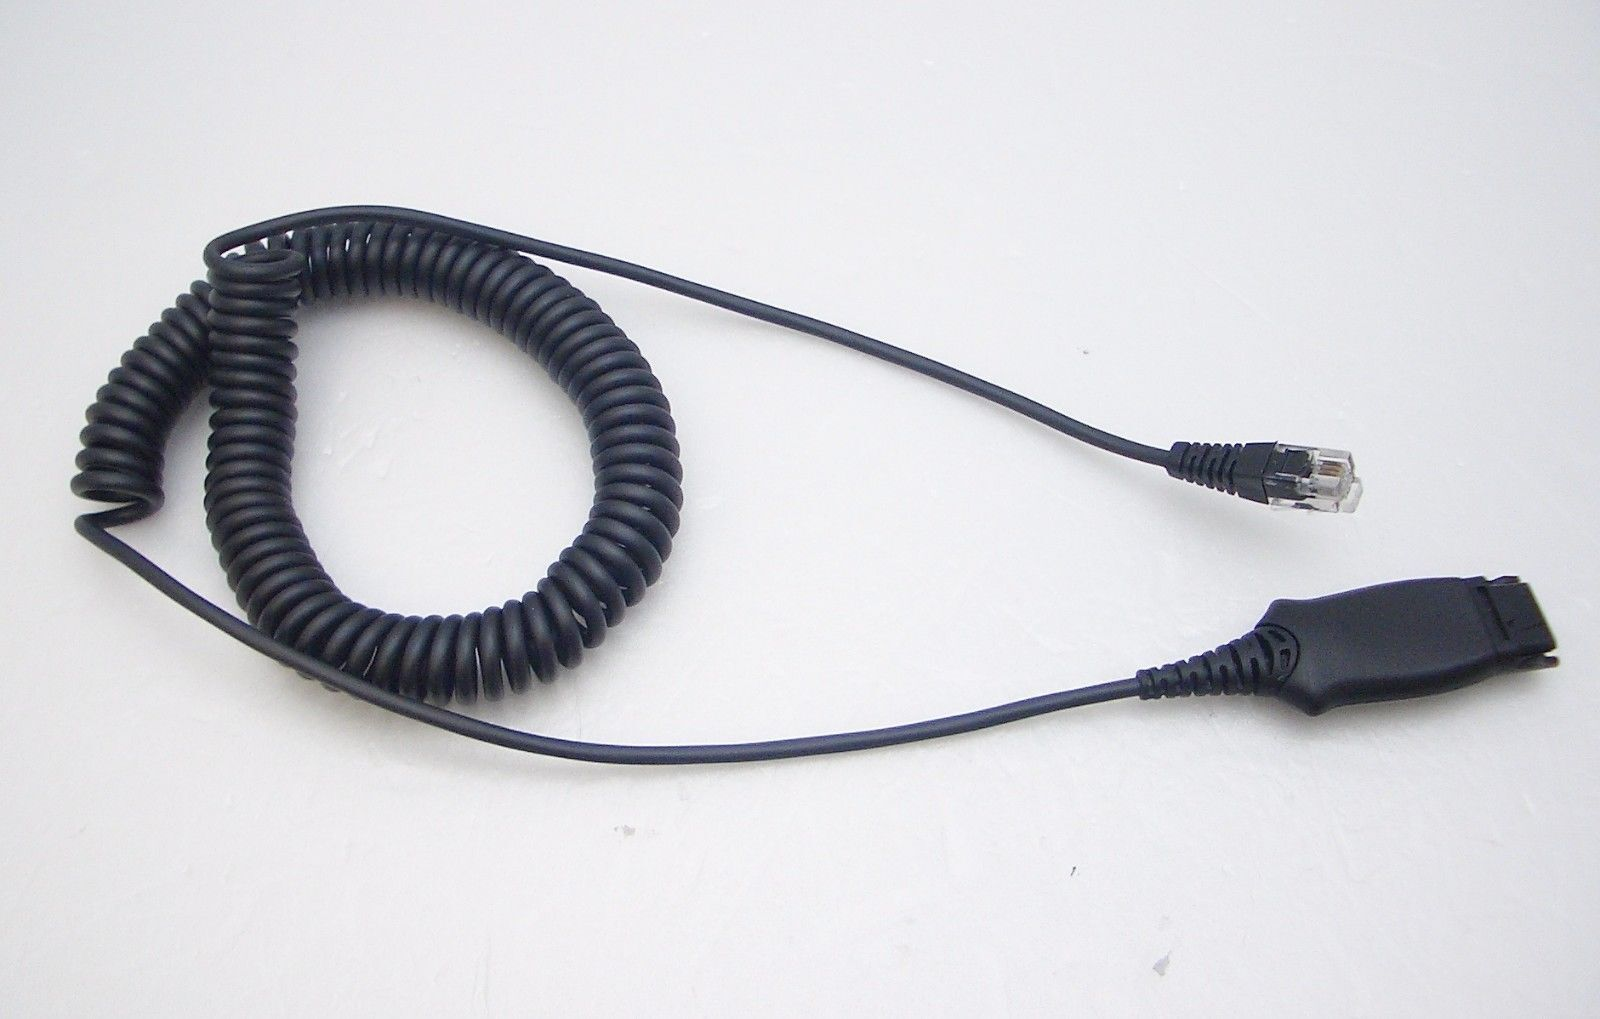 Generic Plantronics His 1 Adapter Cable 72442 41 For Avaya